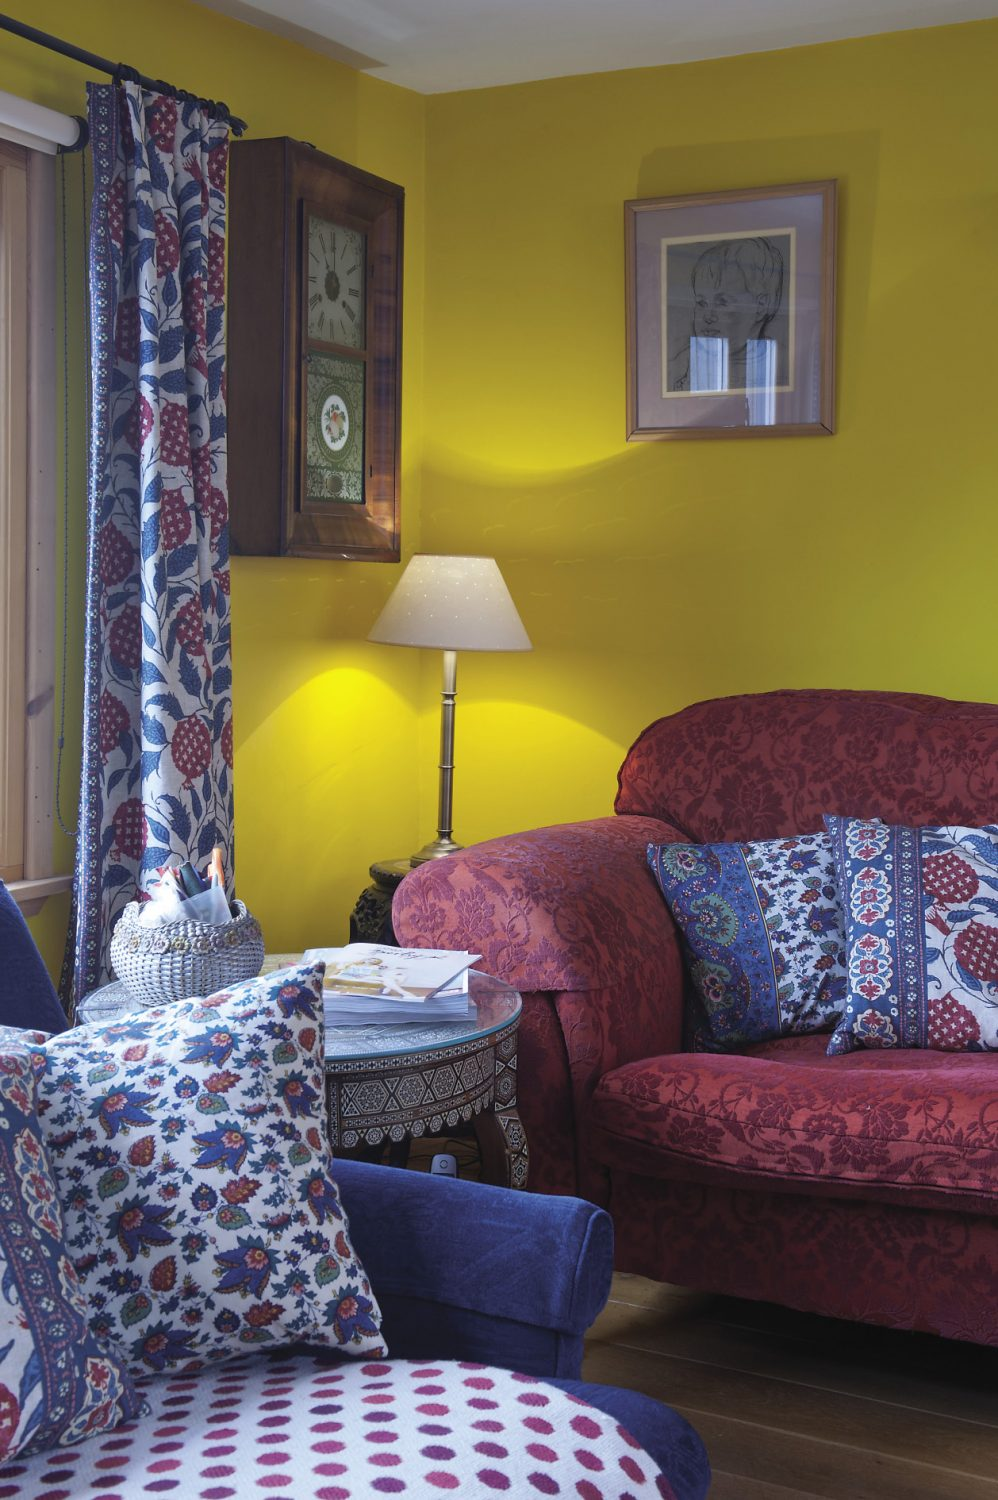 In the sitting room bookshelves are crammed with art and design books. The three sofas are draped with woven woollen throws and an assortment of cushions including some that are covered in a heavy cotton printed with a pomegranate motif, a fabric that Fiona found at Hoopers in Tunbridge Wells